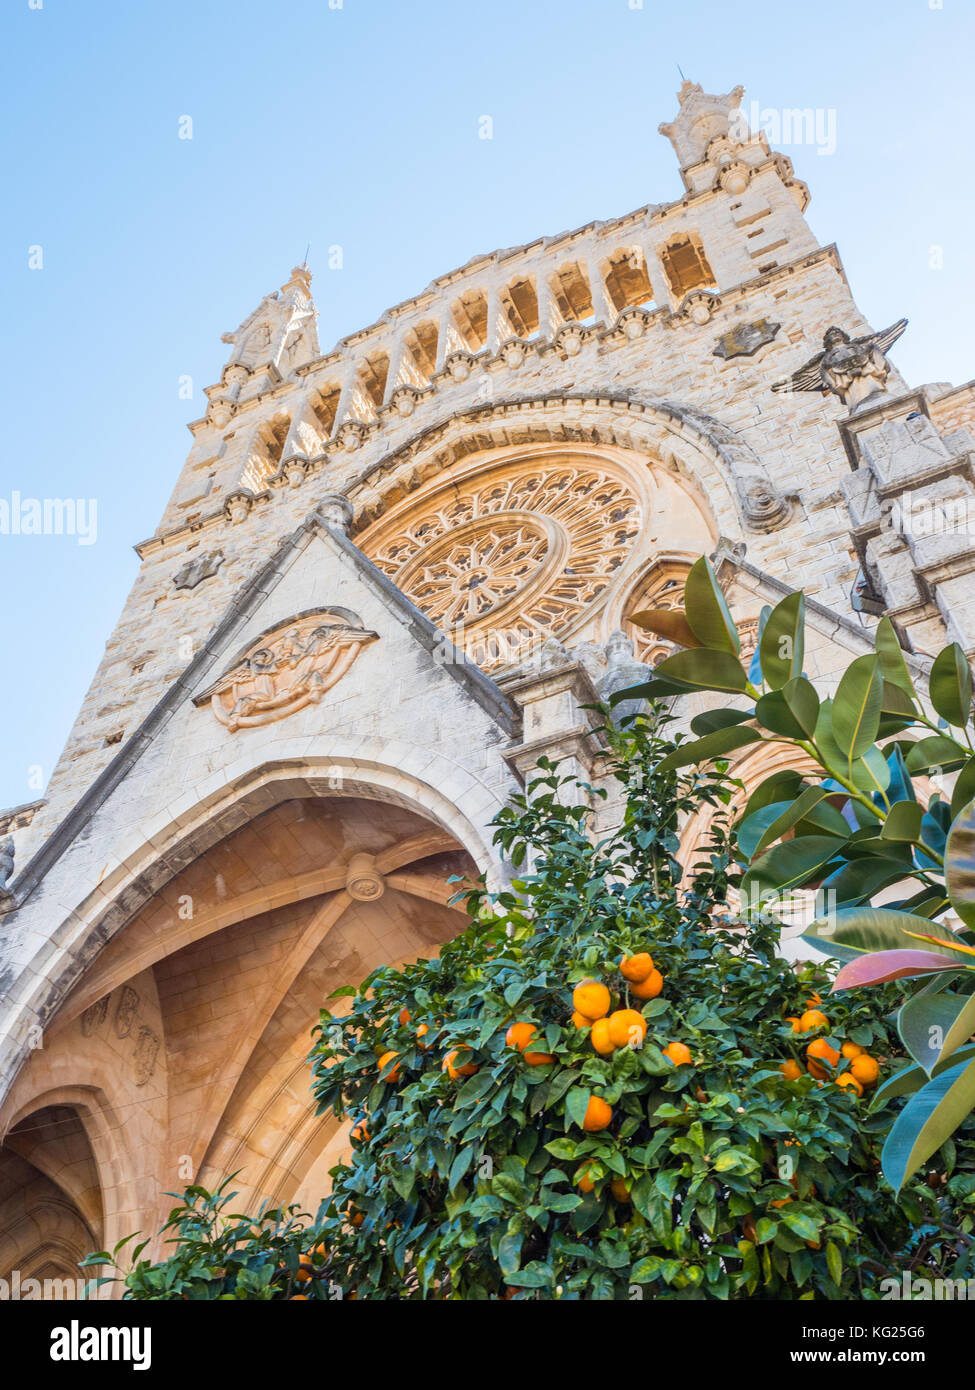 Church and orange trees, Soller, Mallorca, Balearic Islands, Spain, Mediterranean, Europe - Stock Image